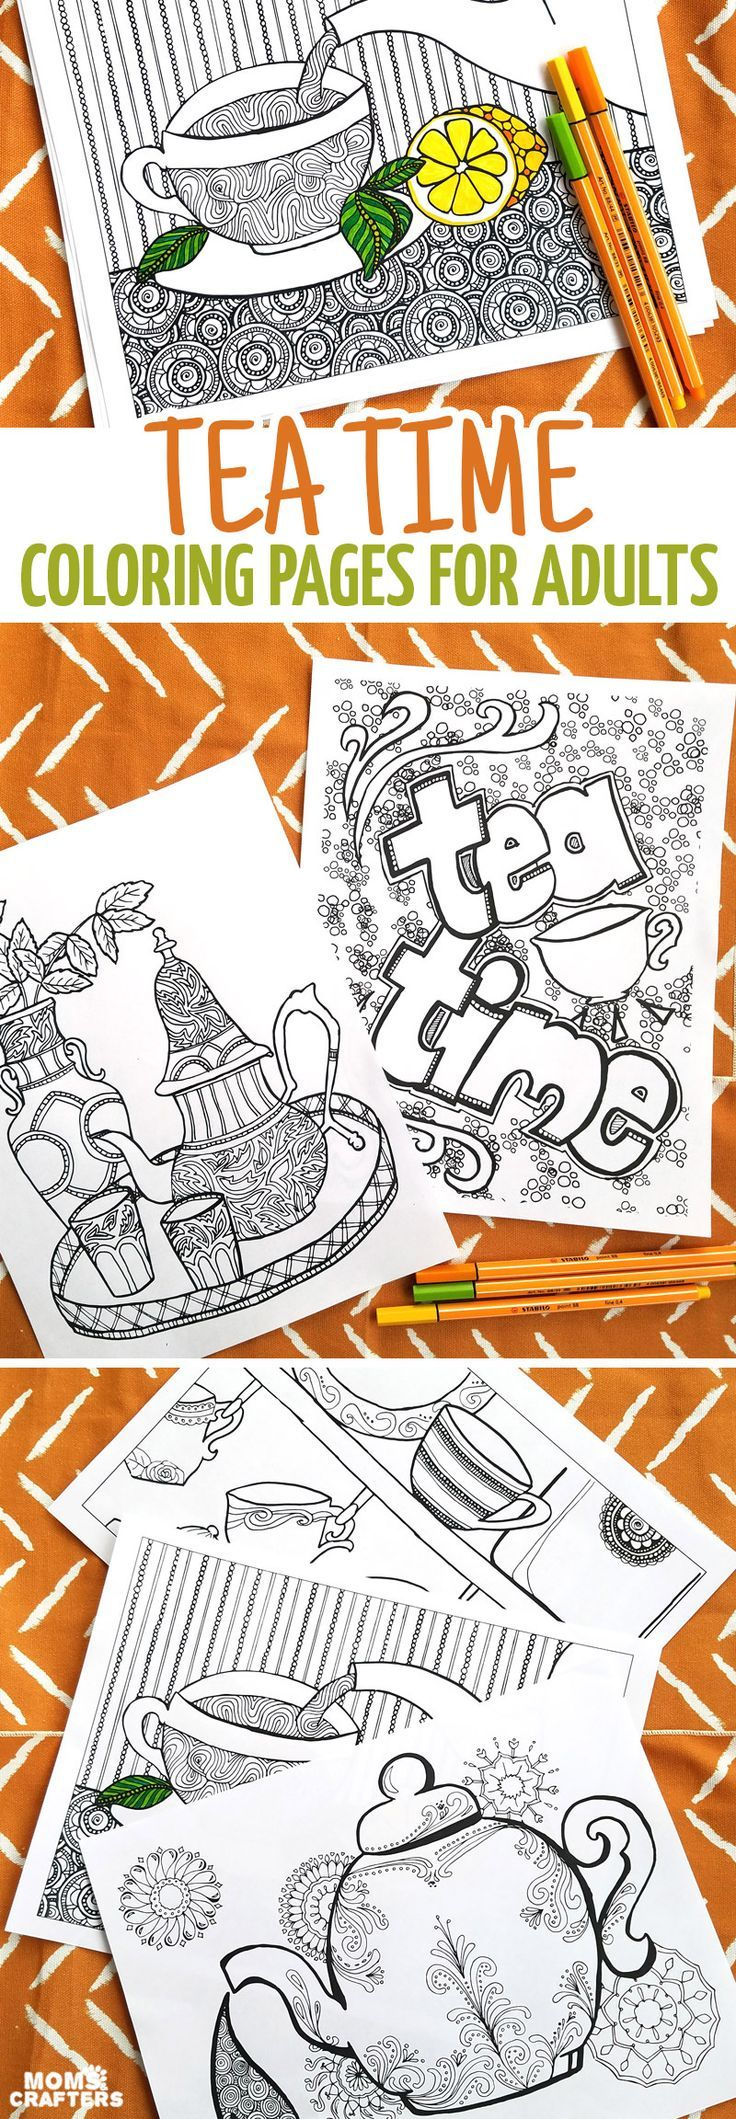 Zen colouring advanced art therapy collector edition - Adult Coloring Pages Perfect For Tea Time